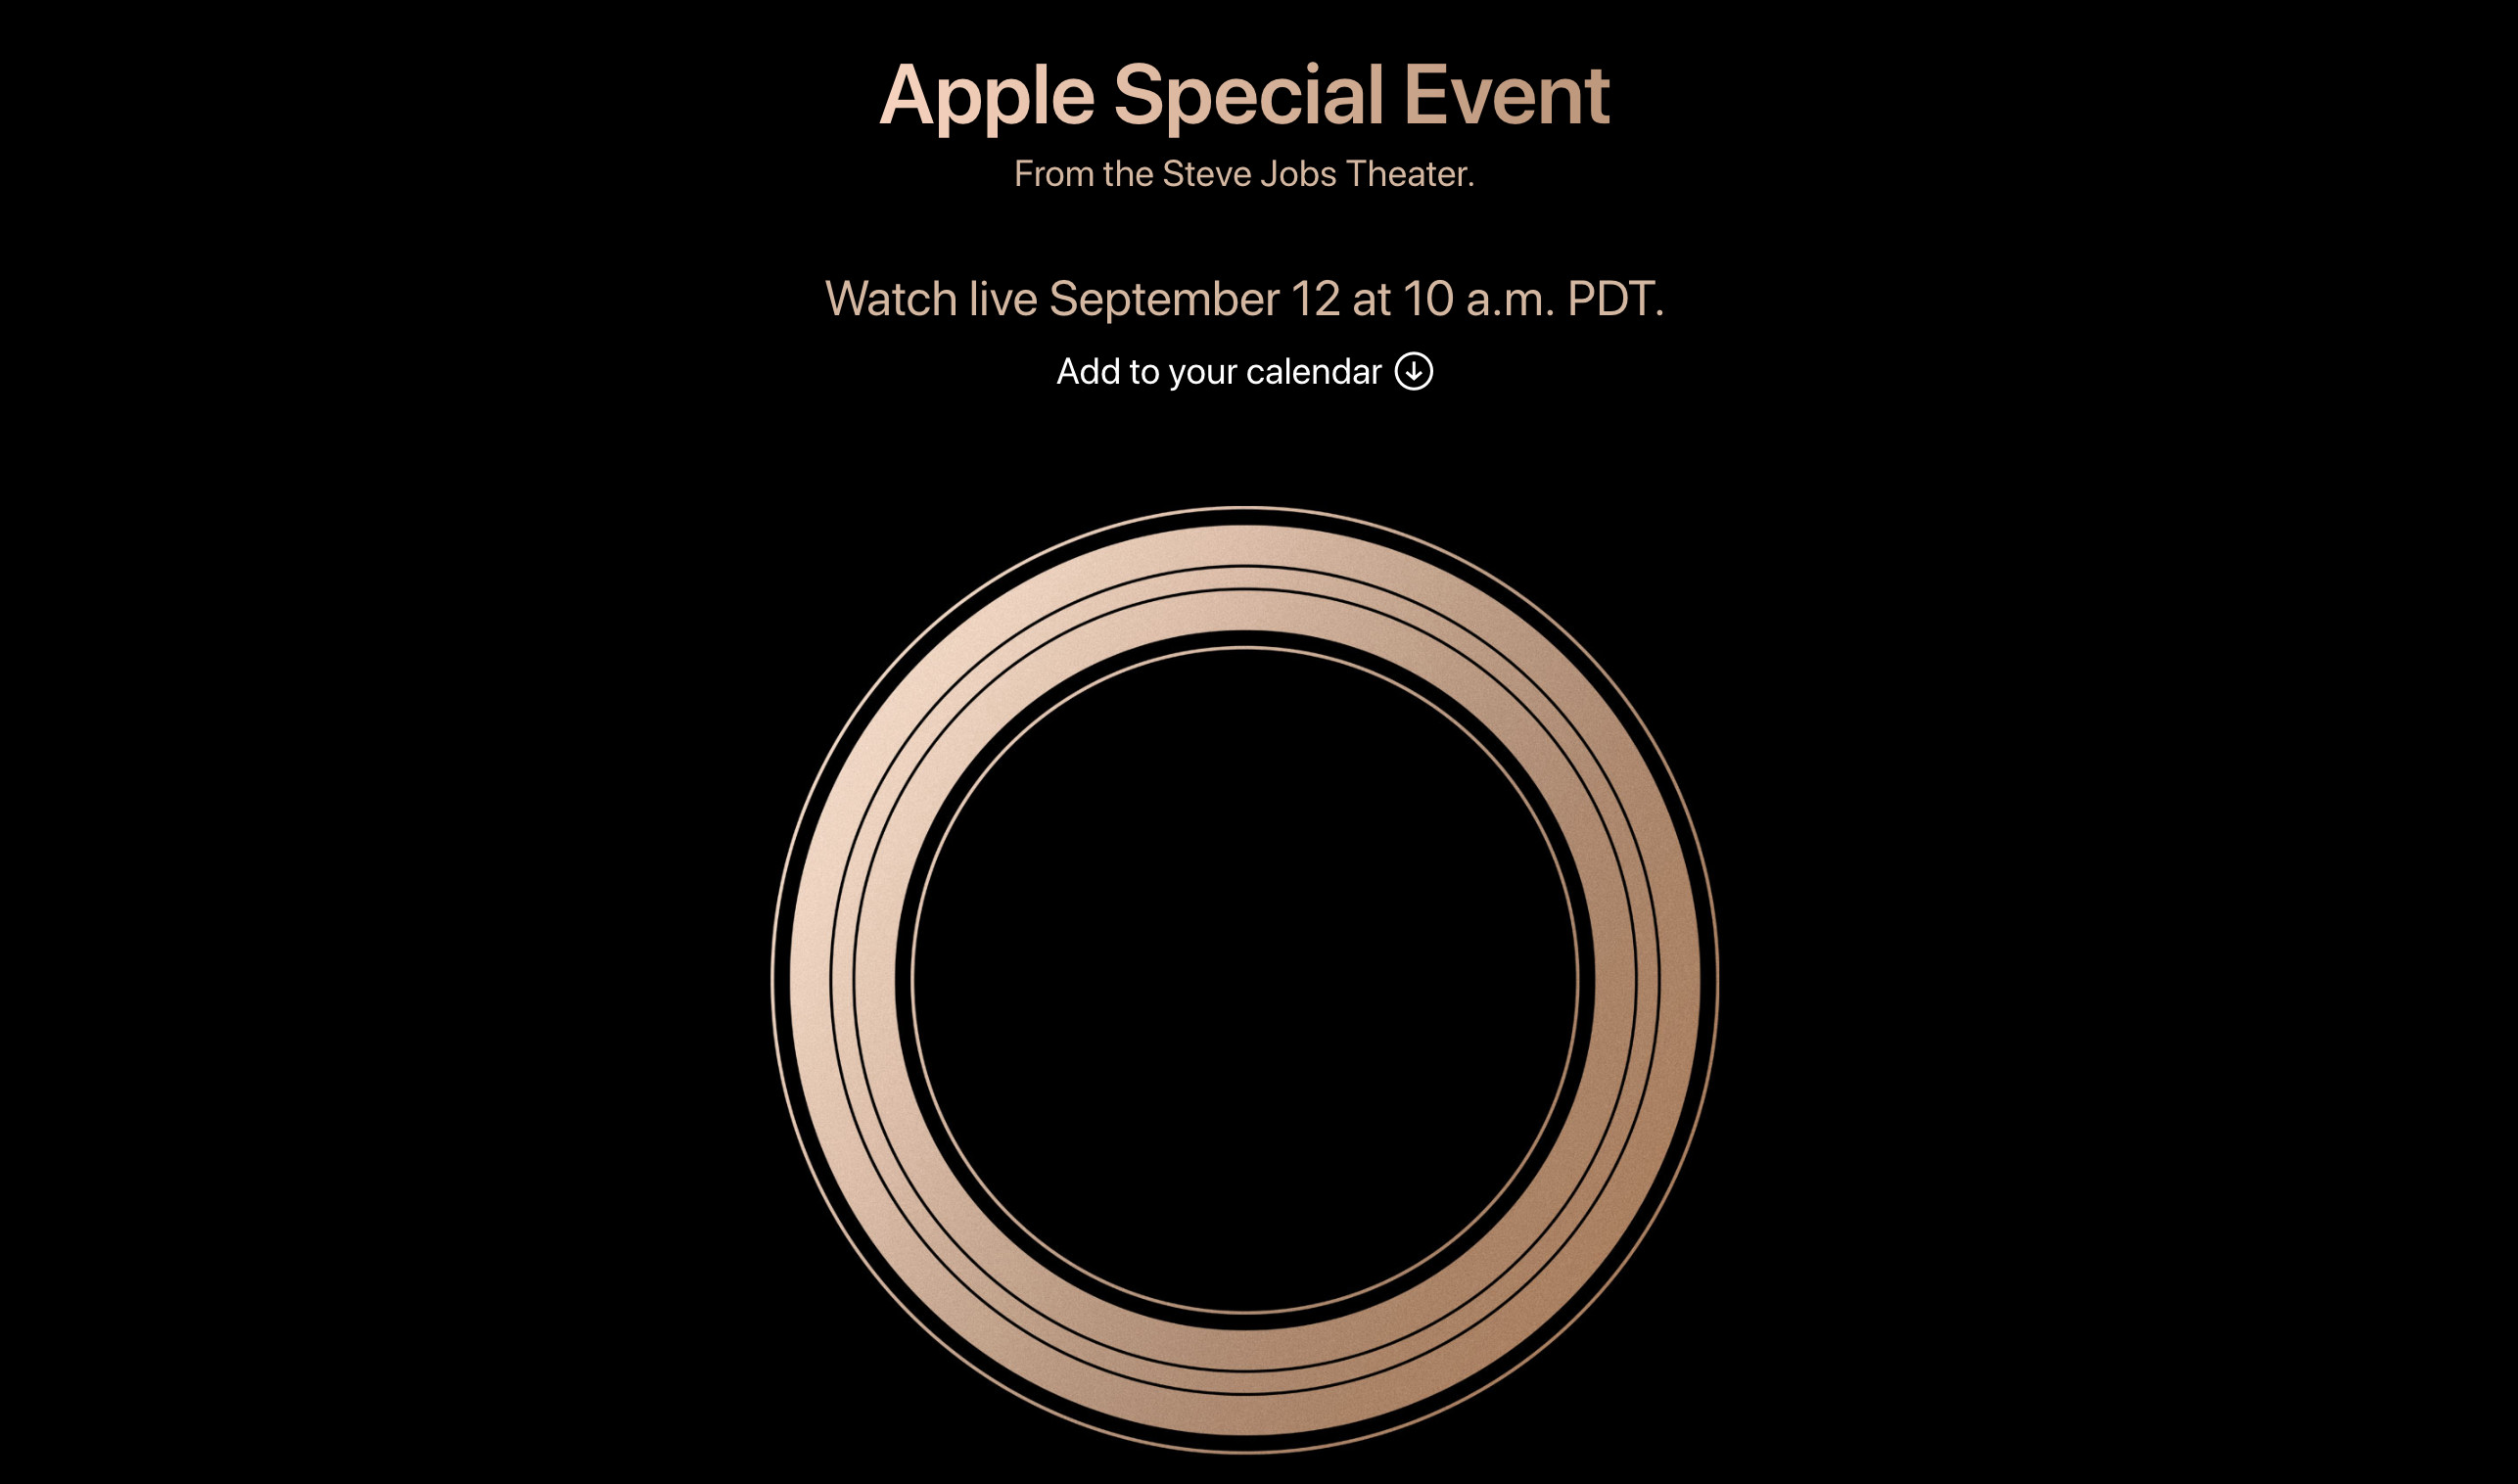 Bigger, thinner Apple Watch Series 4 unveiled at Gather Round event